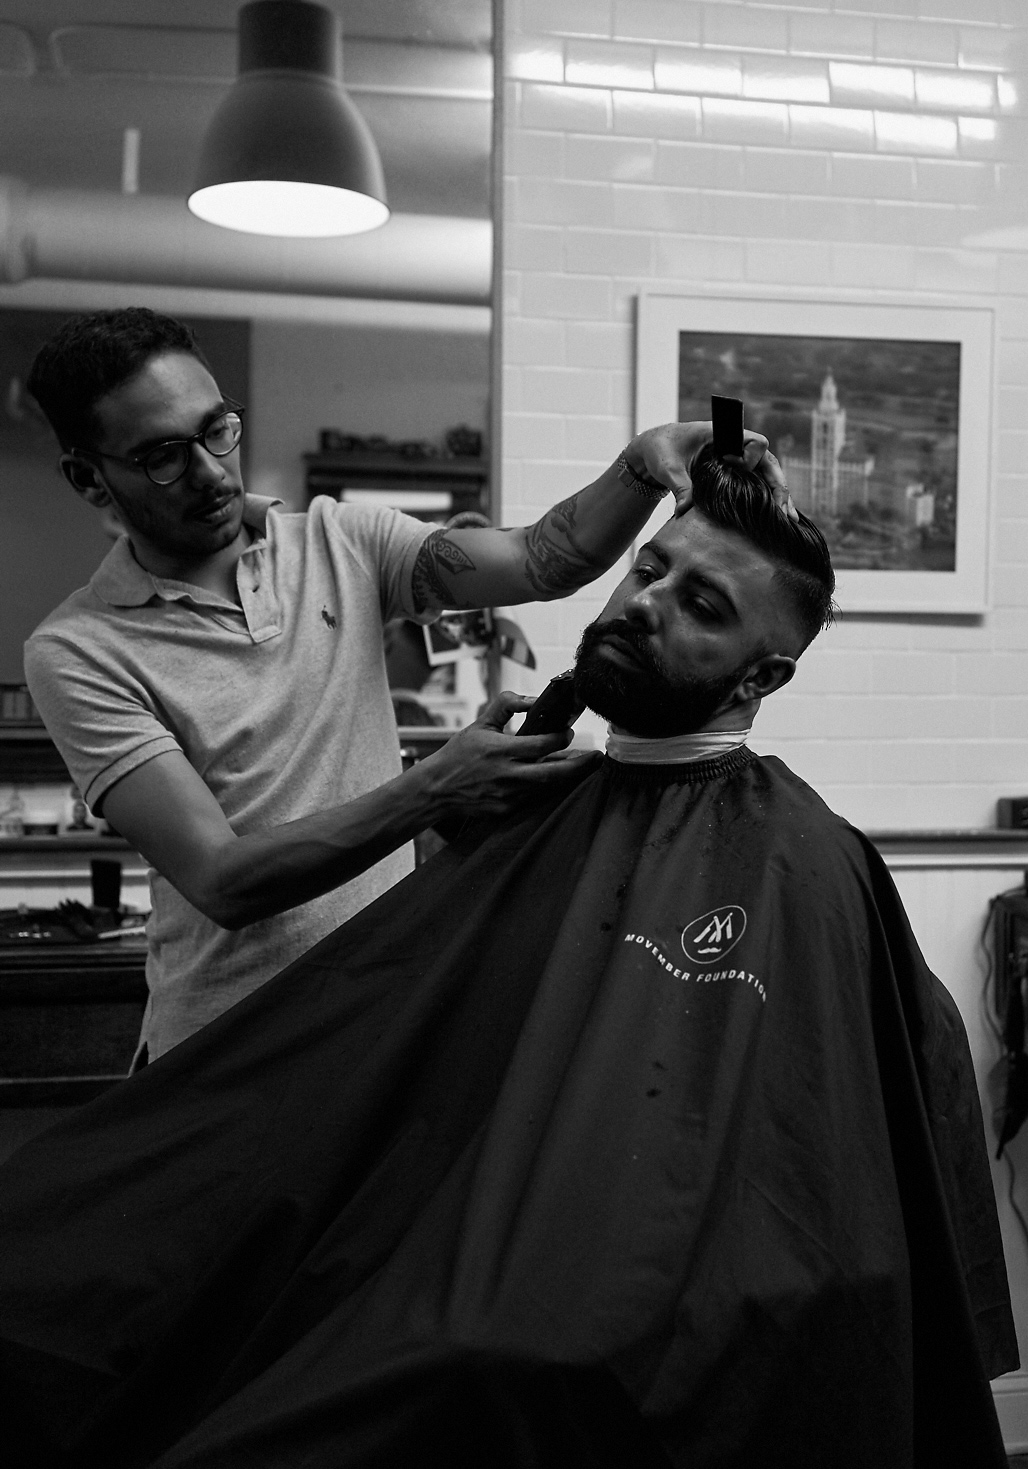 his_and_hers_parlour_barber_shop_salon_jose_romero_photography_wordintown_1_marcelo_prado_1